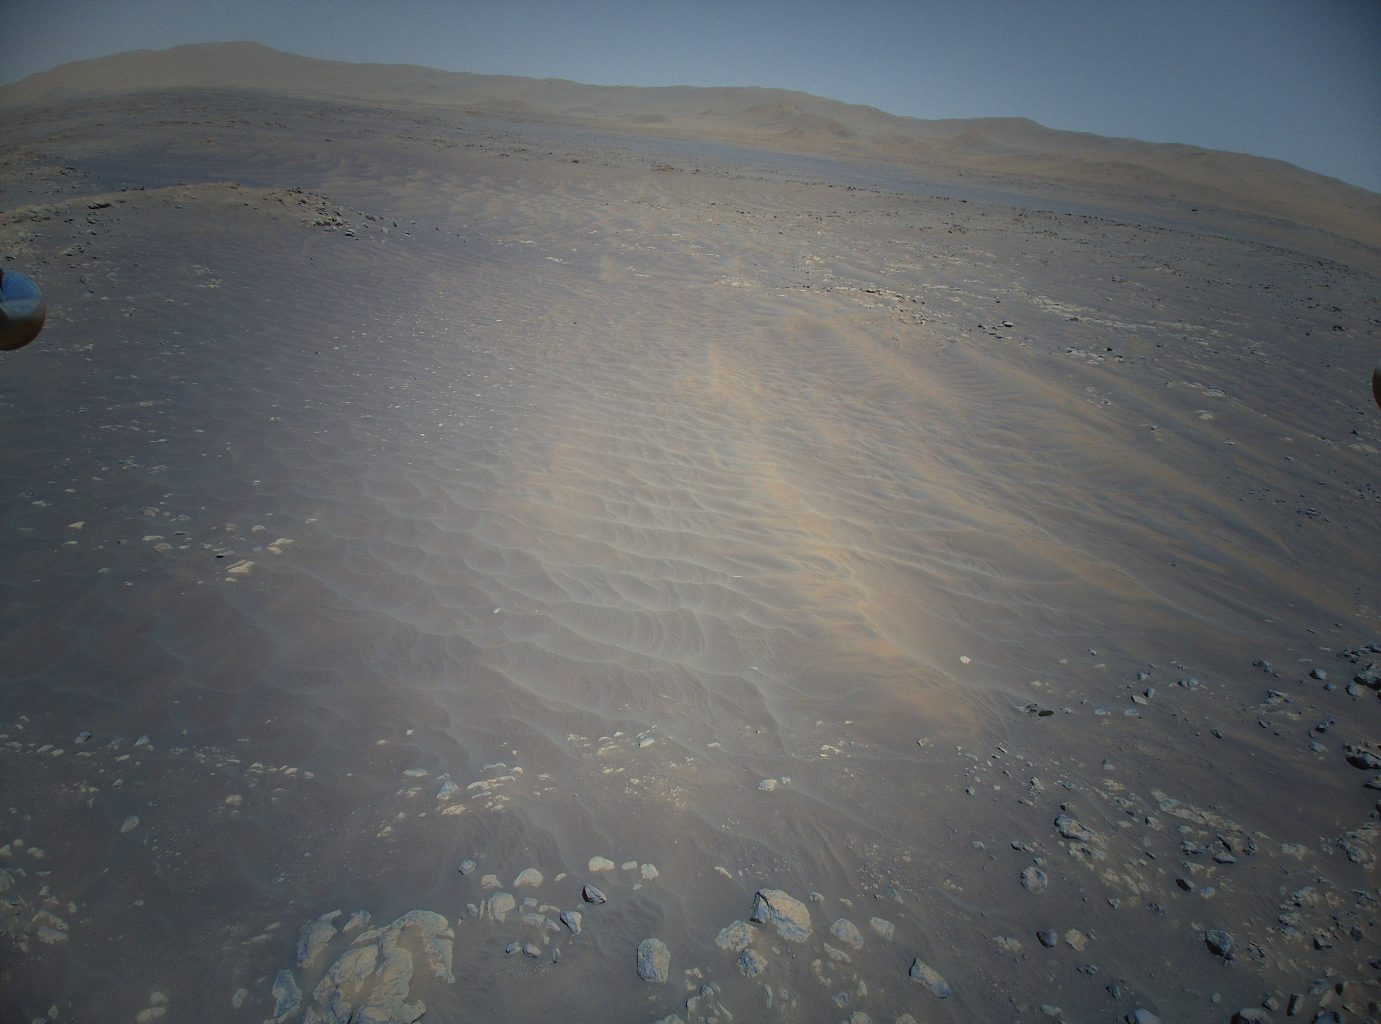 Another new image from the air on Mars. Credit: NASA/JPL-Caltech